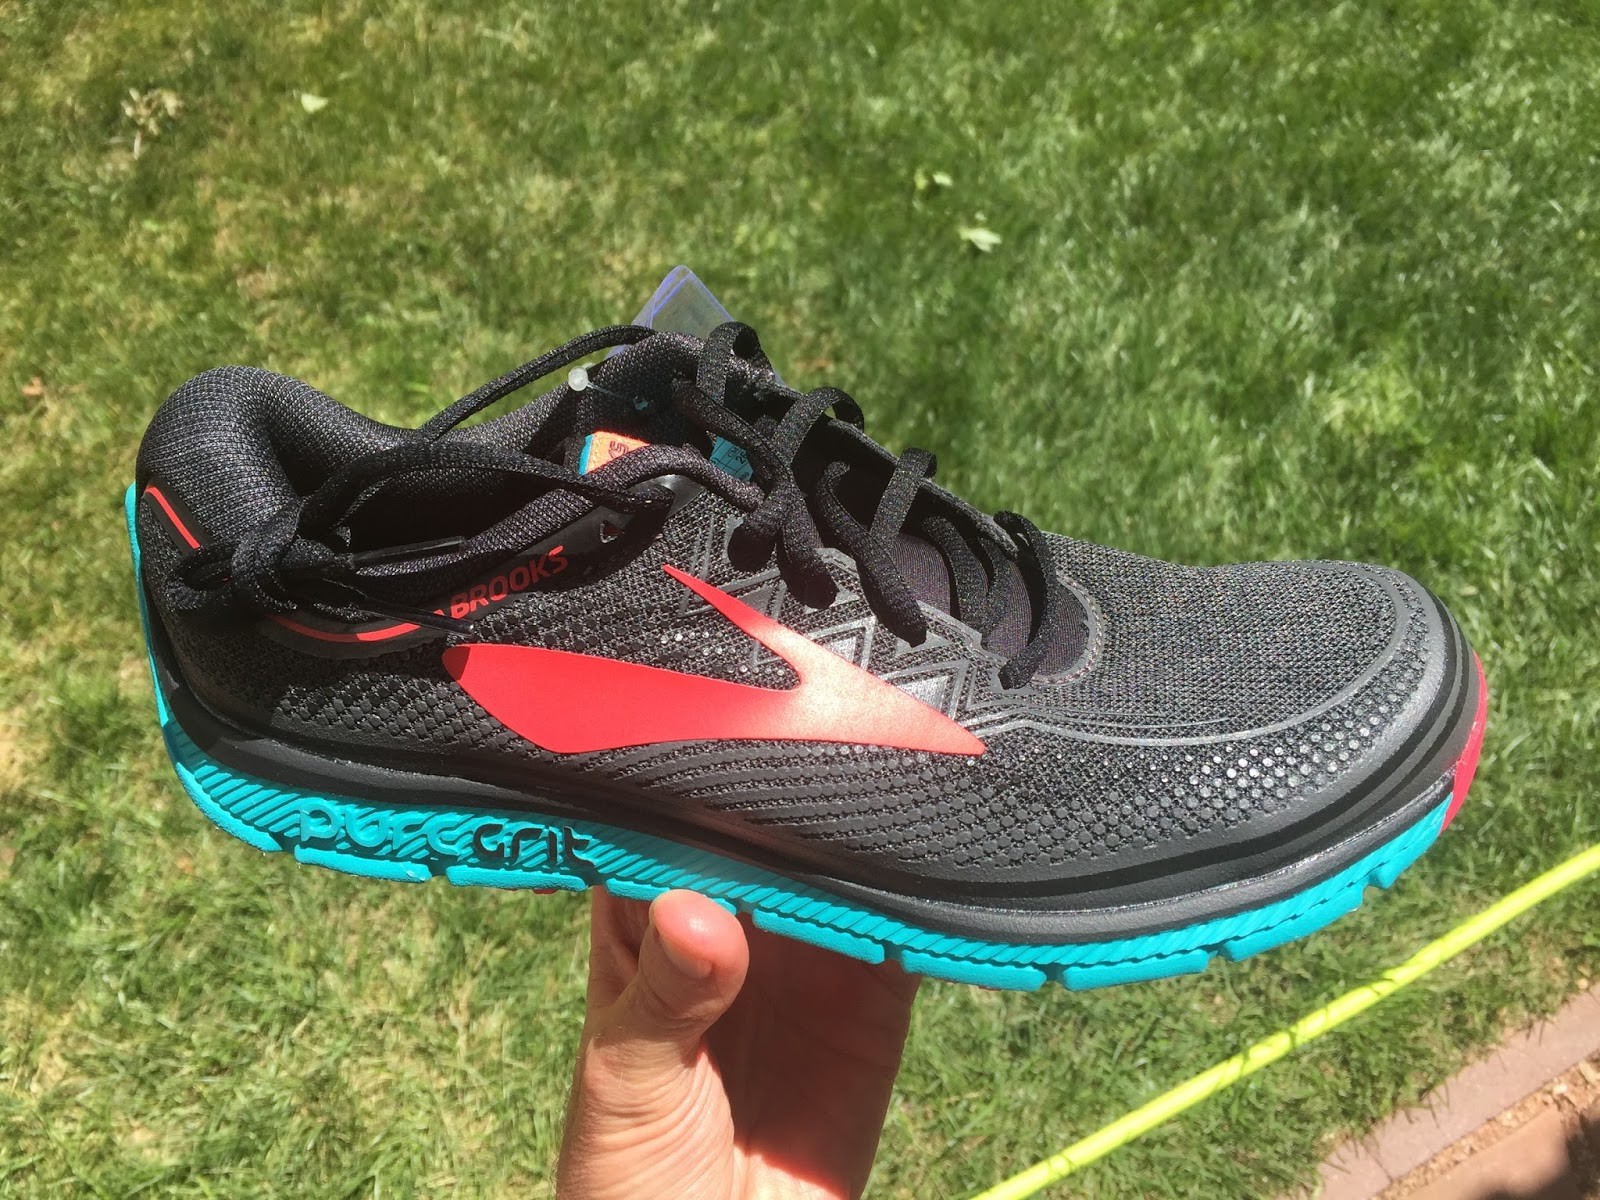 11b449ccc8a3e The PureGrit 6 comprises of a very attractive cloth like mesh upper with a  knit like look with an array of rubber 3D printed overlays to provide  strategic ...